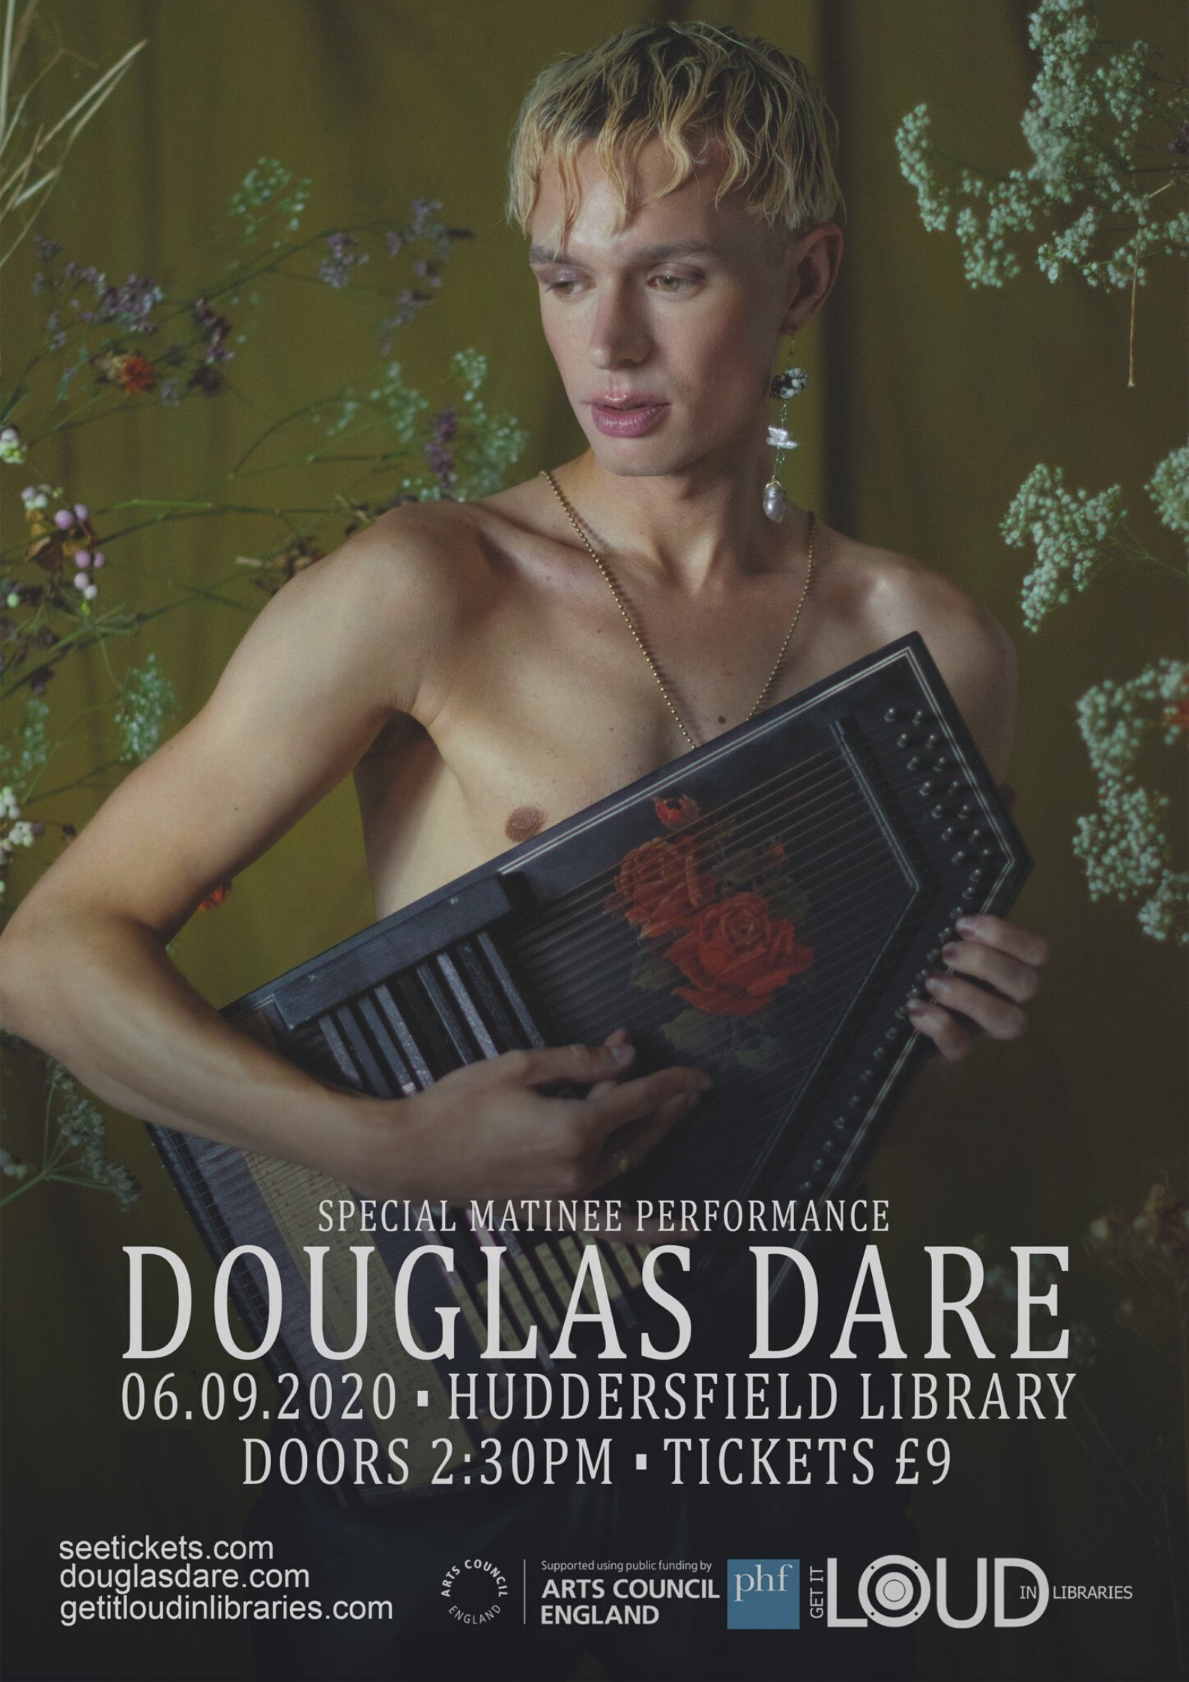 DOUGLAS DARE RESCEDULED – Copy